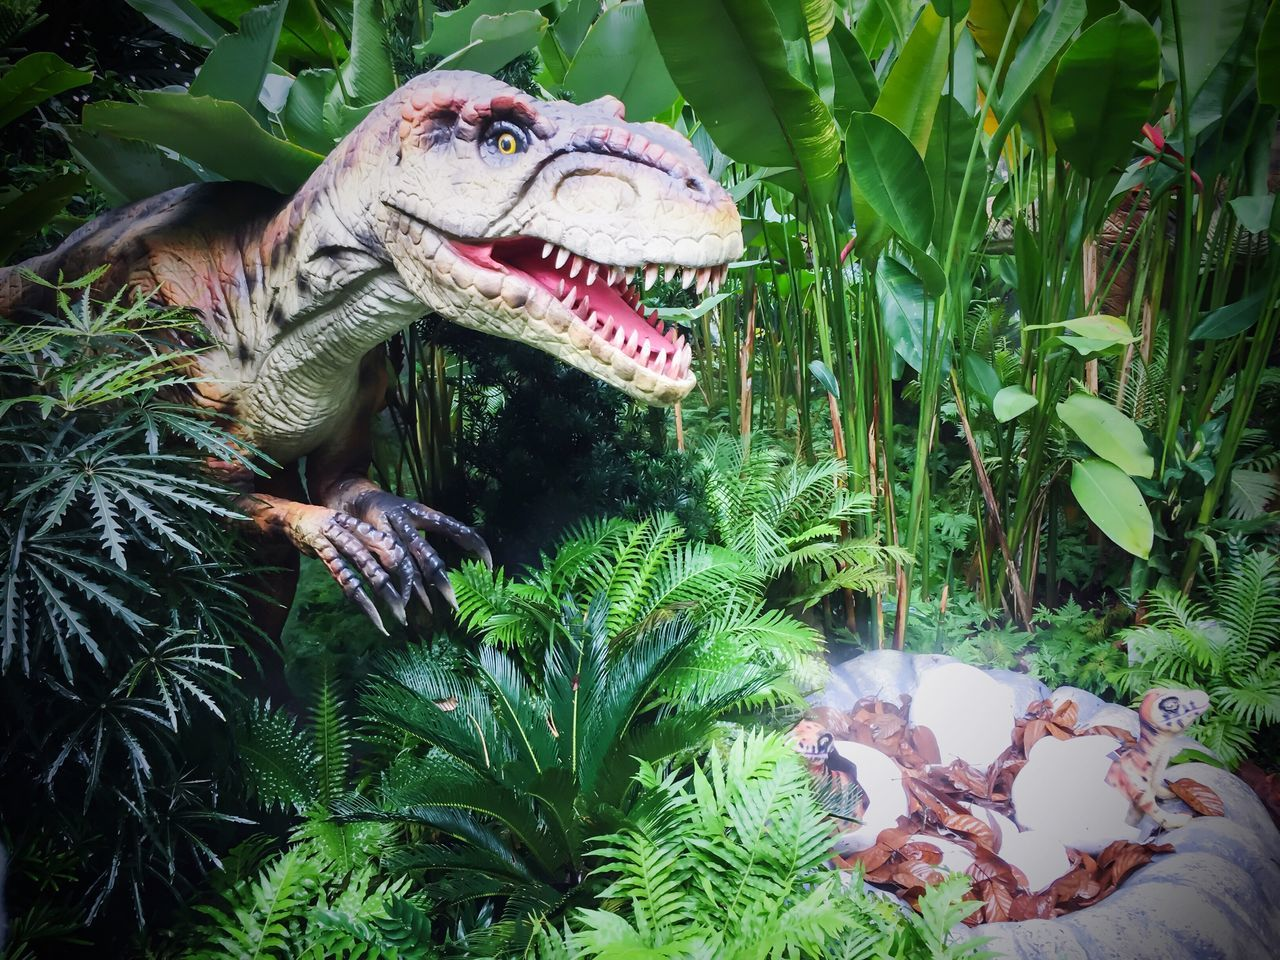 Dinosaur Extinct No People Outdoors Iphone 6 IPhone Photography Iphonephotography Singapore Zoo. Singapore Zoological Garden Singapore Zoo Dinosaurs Dinosaur Baby Dinosaur In Nest Baby Dinosaur